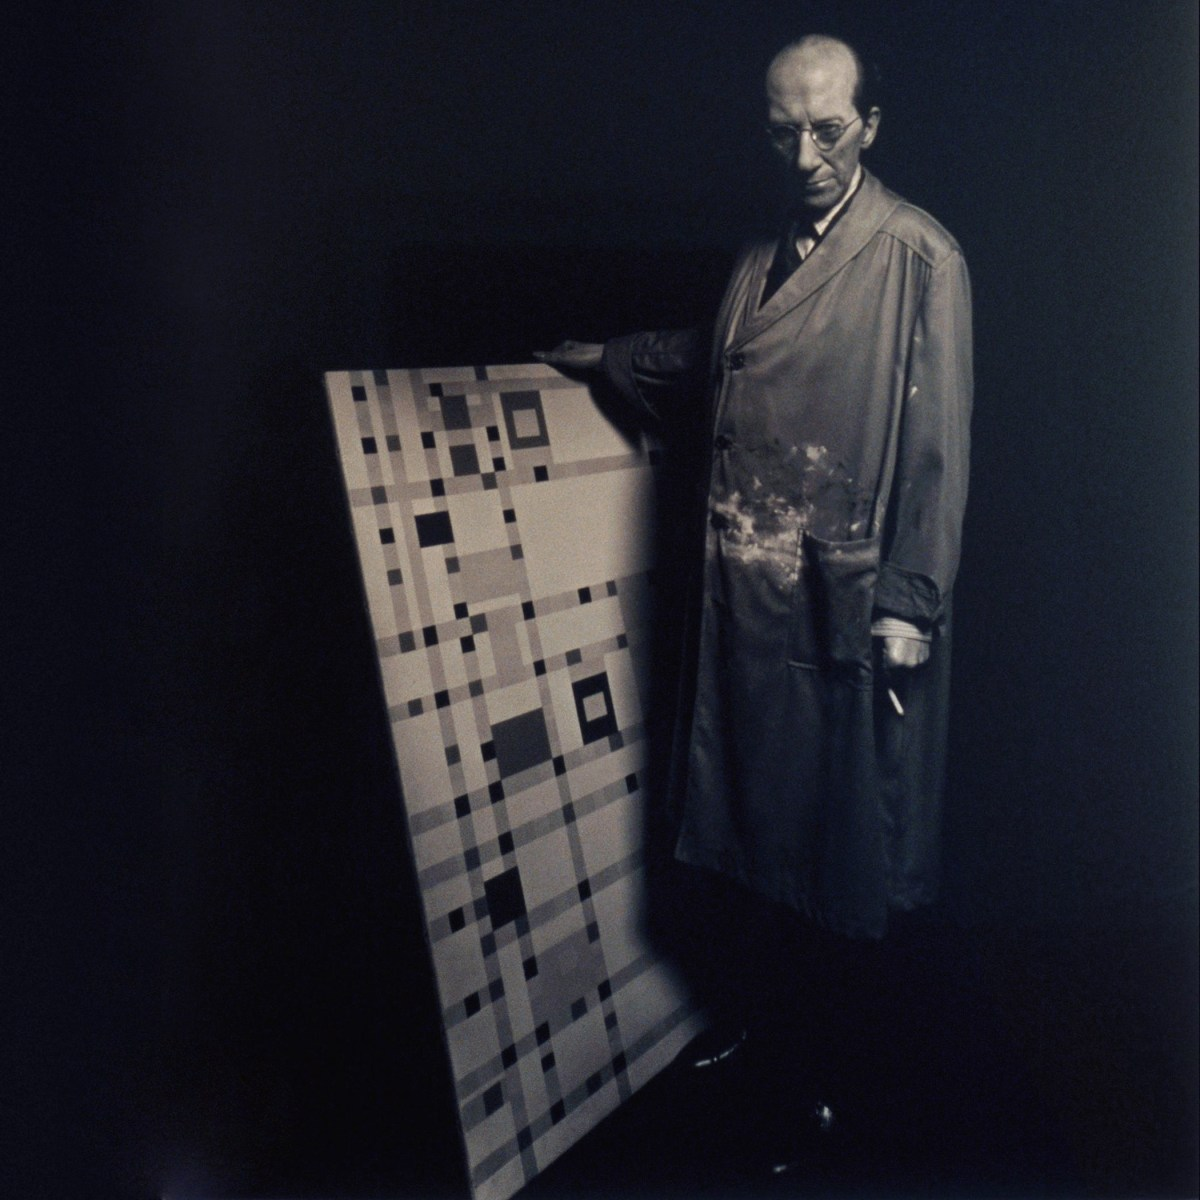 Mondrian: Order and randomness in abstract painting